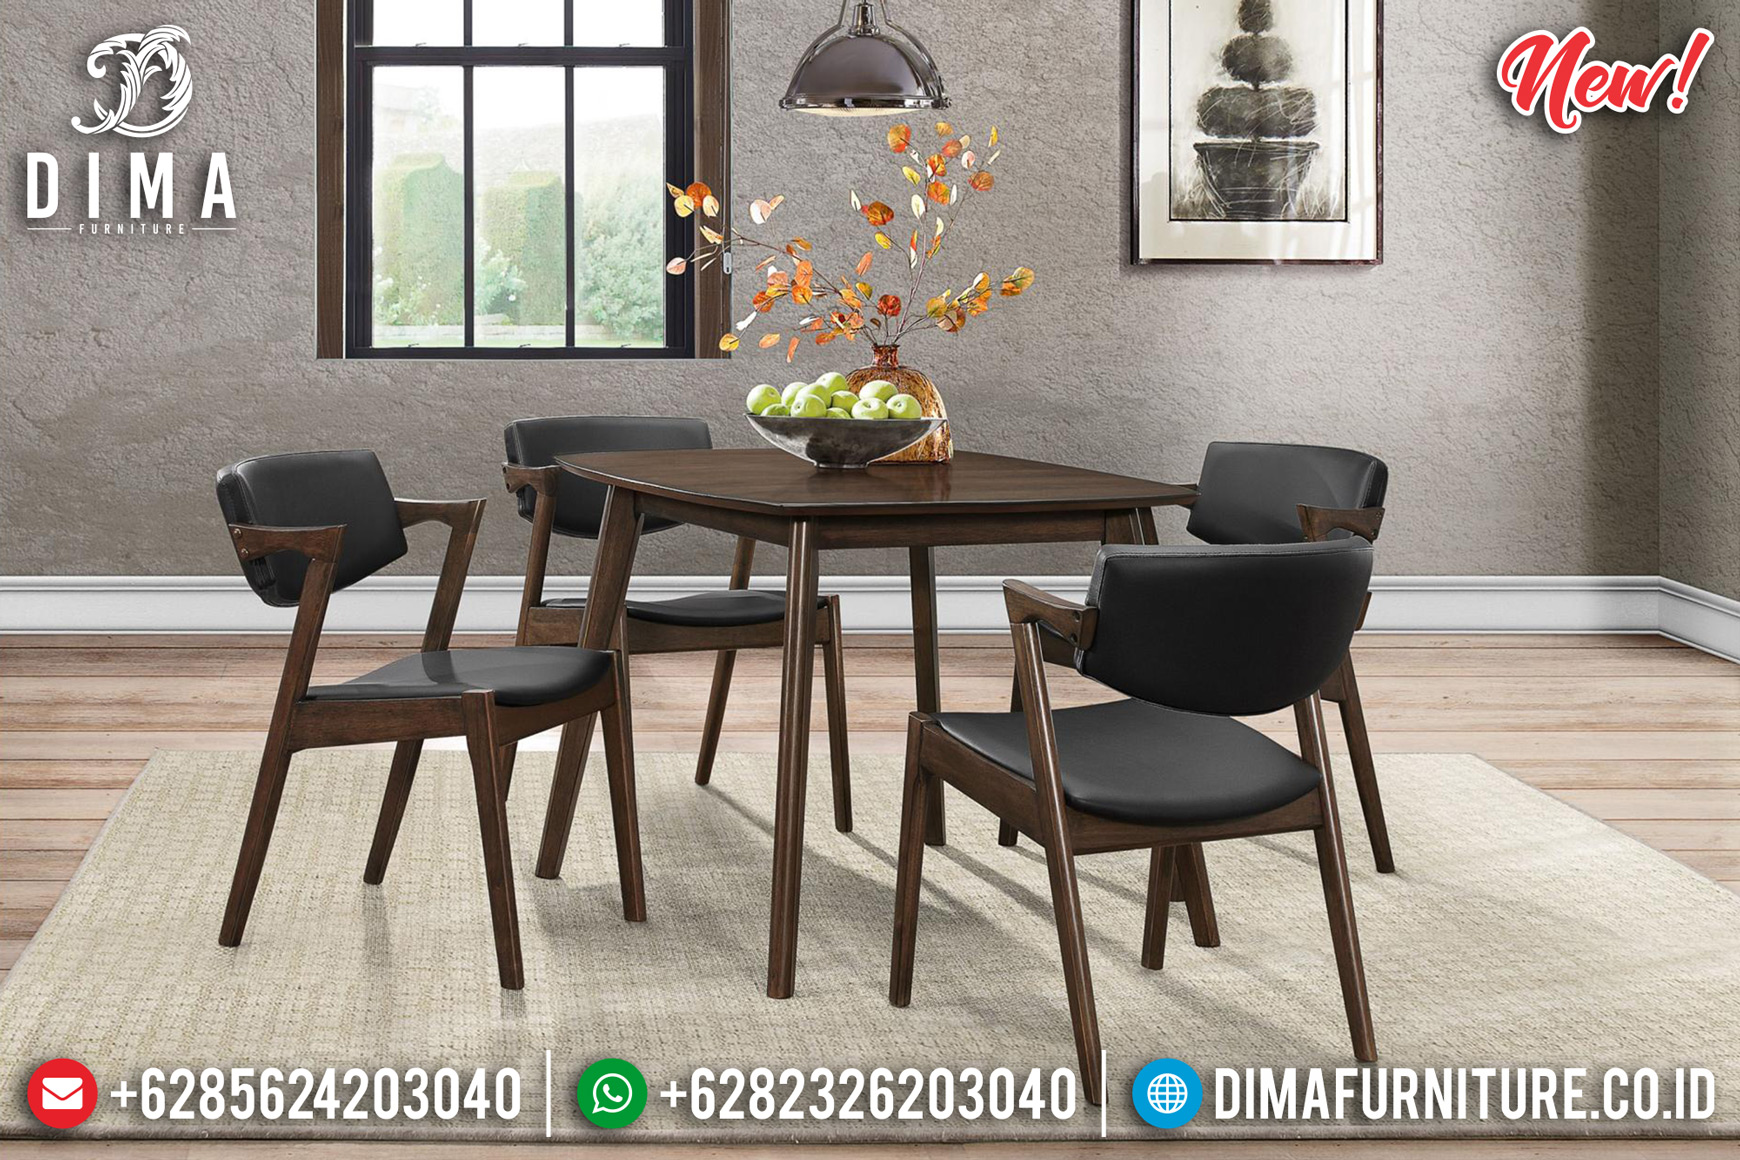 New Meja Makan Minimalis Giovani Natural Jati Jepara Luxury Furniture Jepara DF-1447